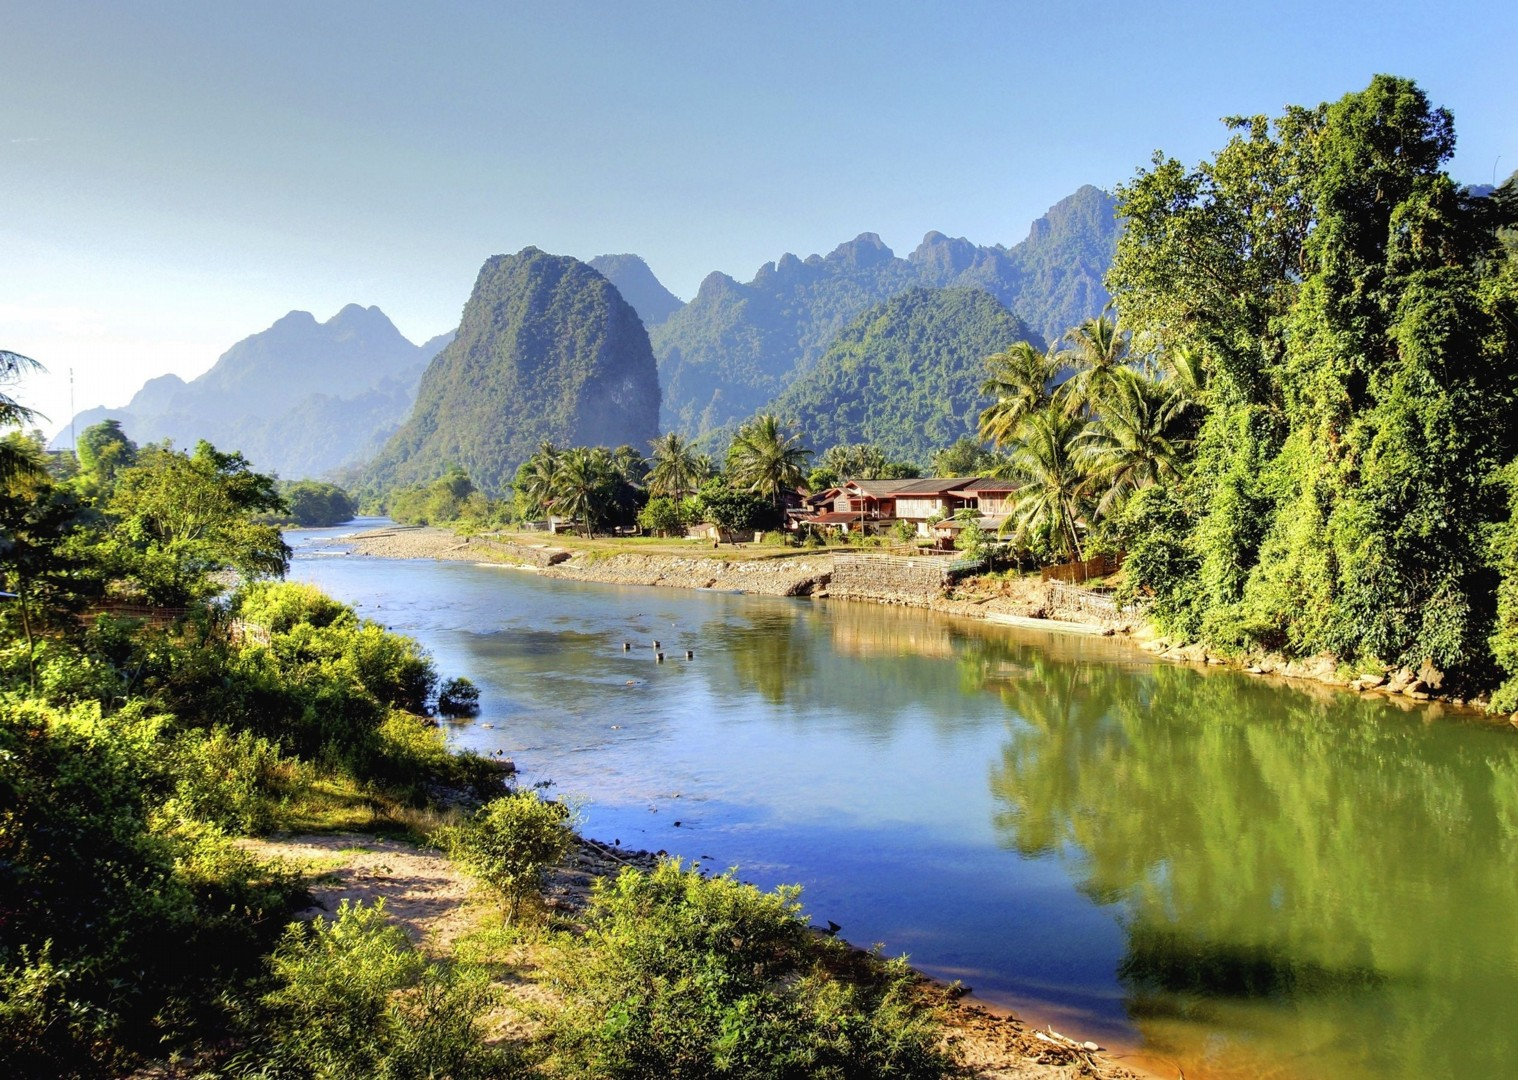 cycling-adventure-holiday-laos-landscape.jpg - Laos - Hidden Treasures - Cycling Adventures